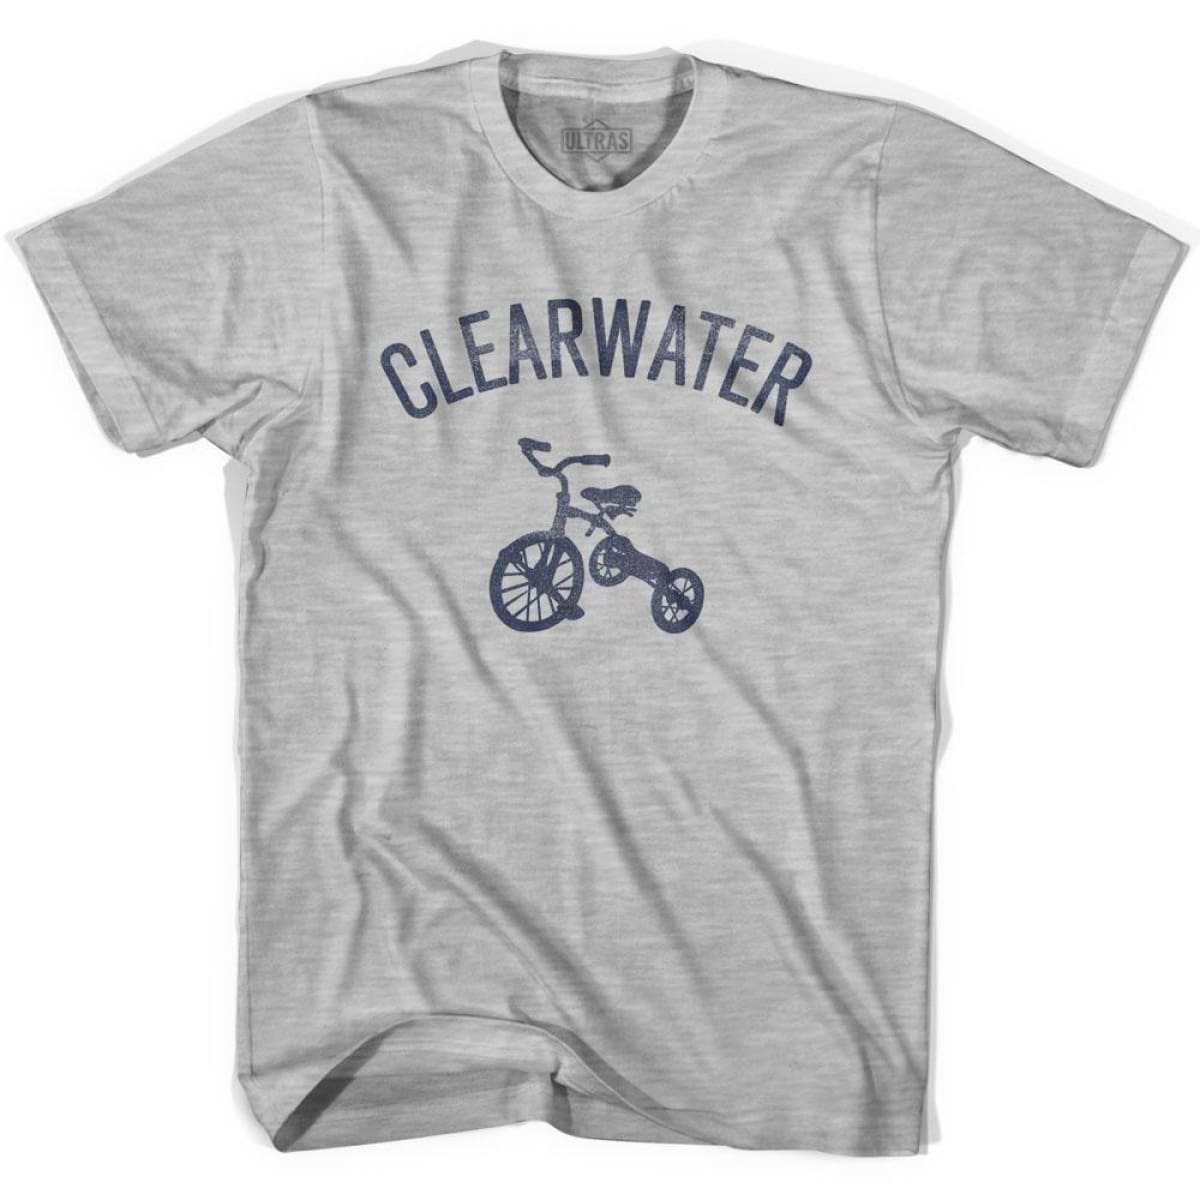 Clearwater City Tricycle Youth Cotton T-shirt - Tricycle City